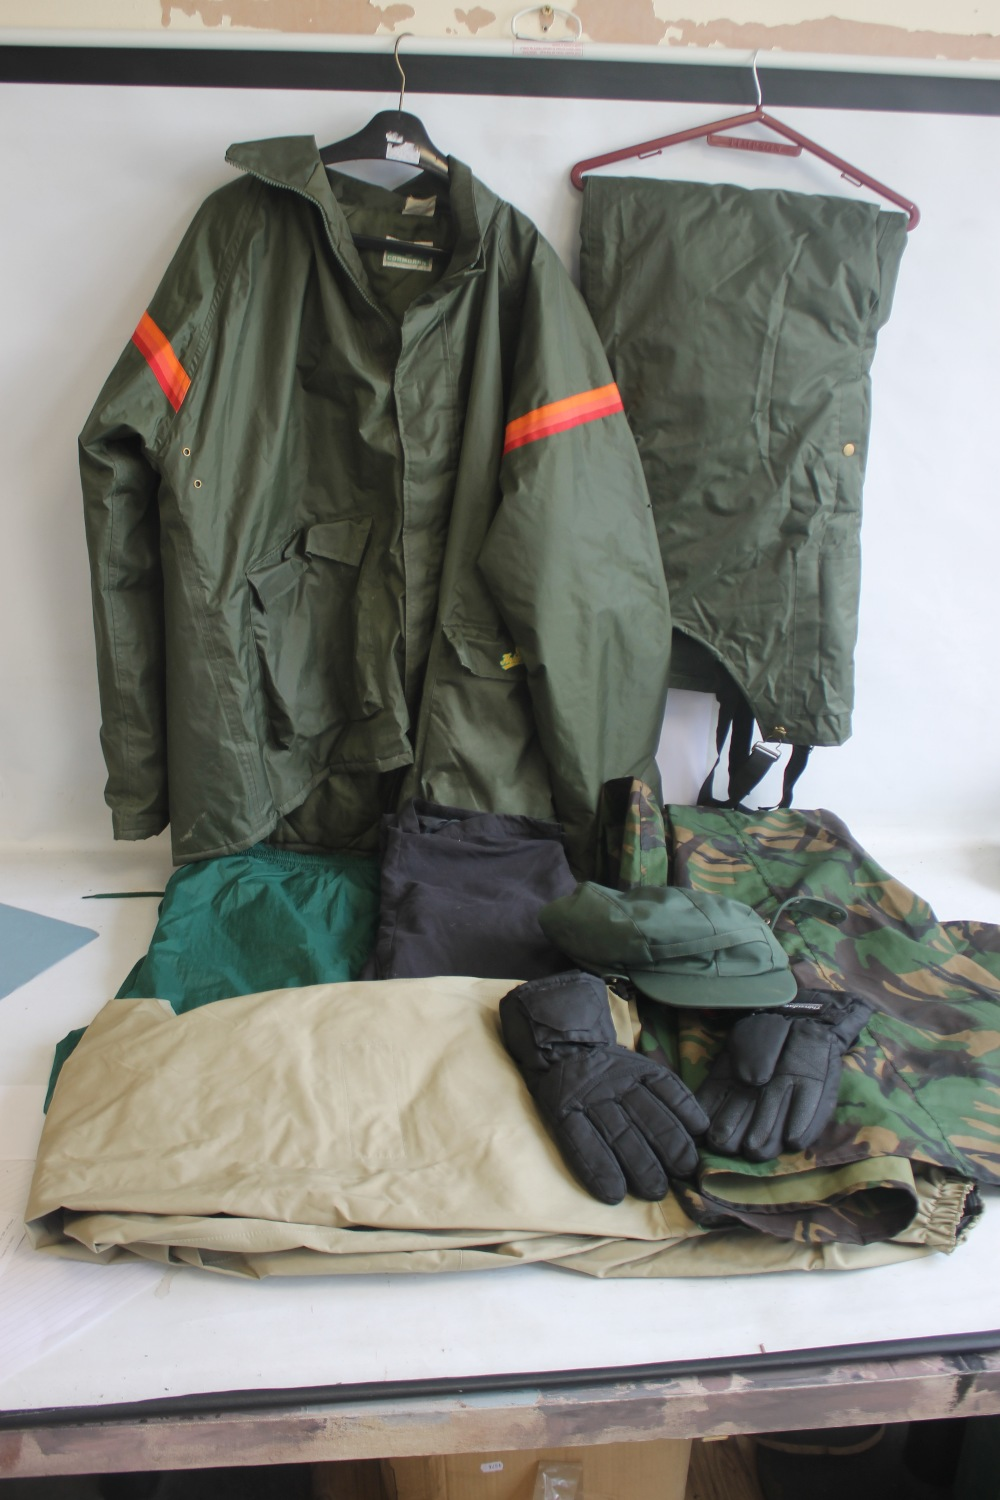 A COLLECTION OF ASSORTED FISHING CLOTHING, to include a Cormoran jacket and braces size XXXL, a